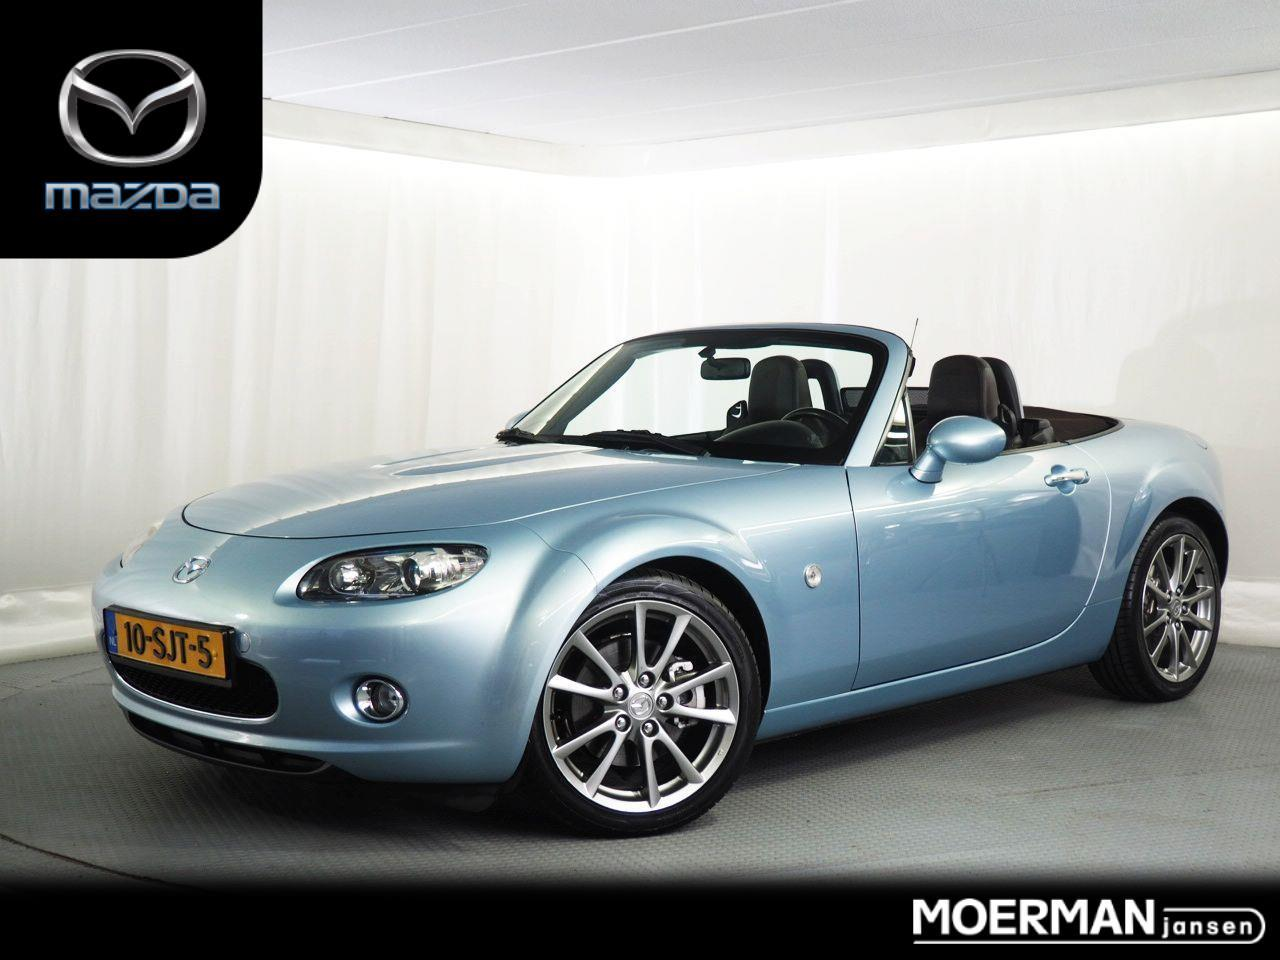 Mazda Mx-5 1.8 sofftop / limited edition met brown leather /  17 inch velgen /